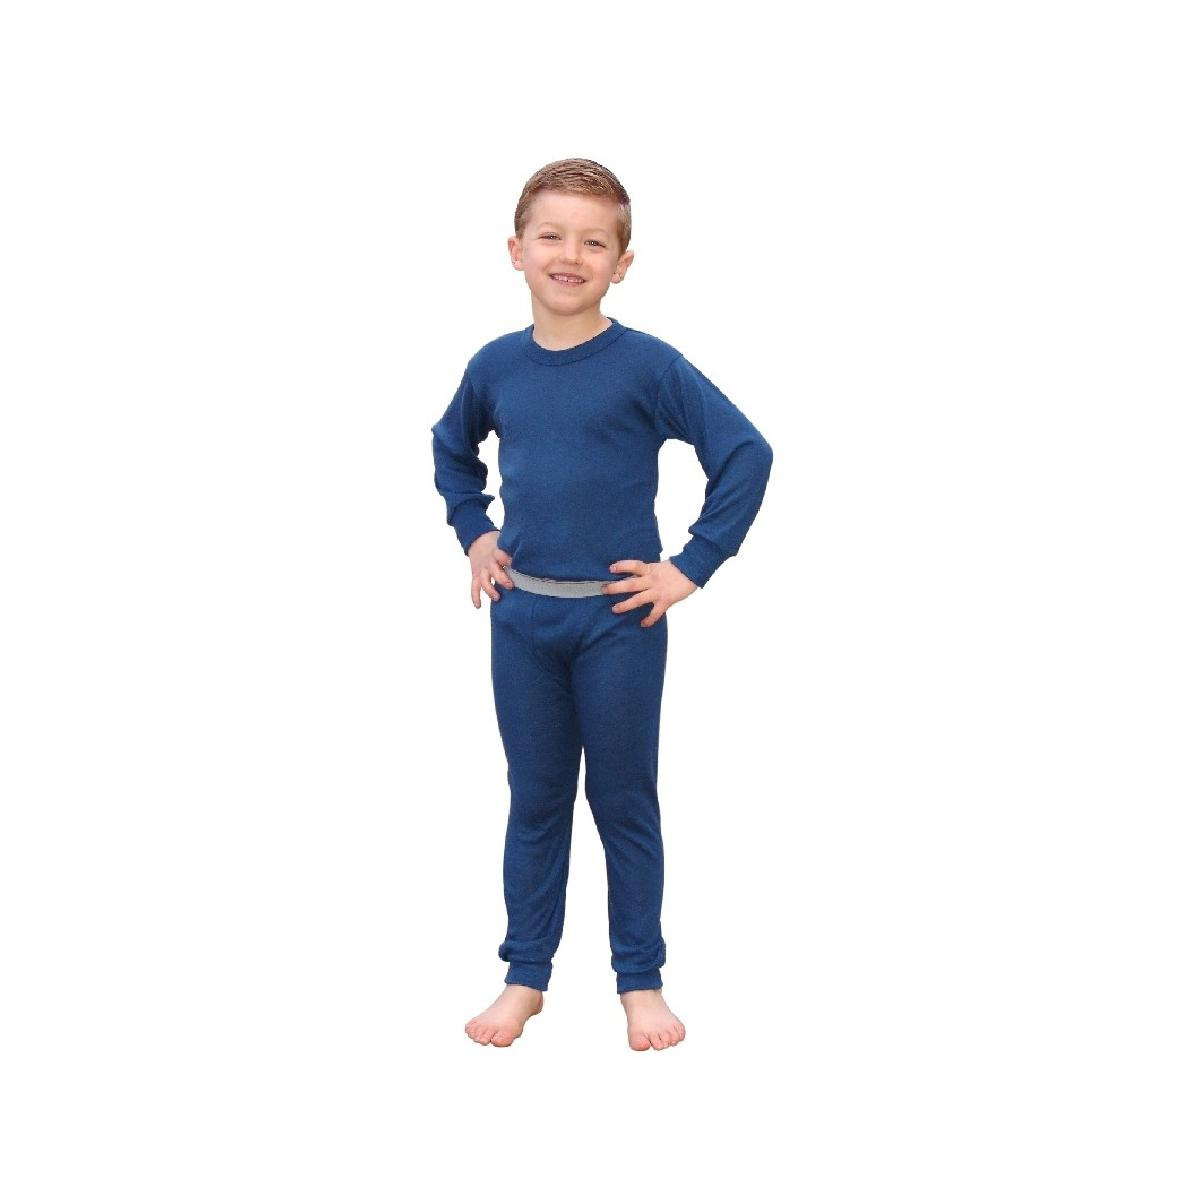 Boys Blue Indera Thermal Underwear Set, Includes Tops & Bottoms ...